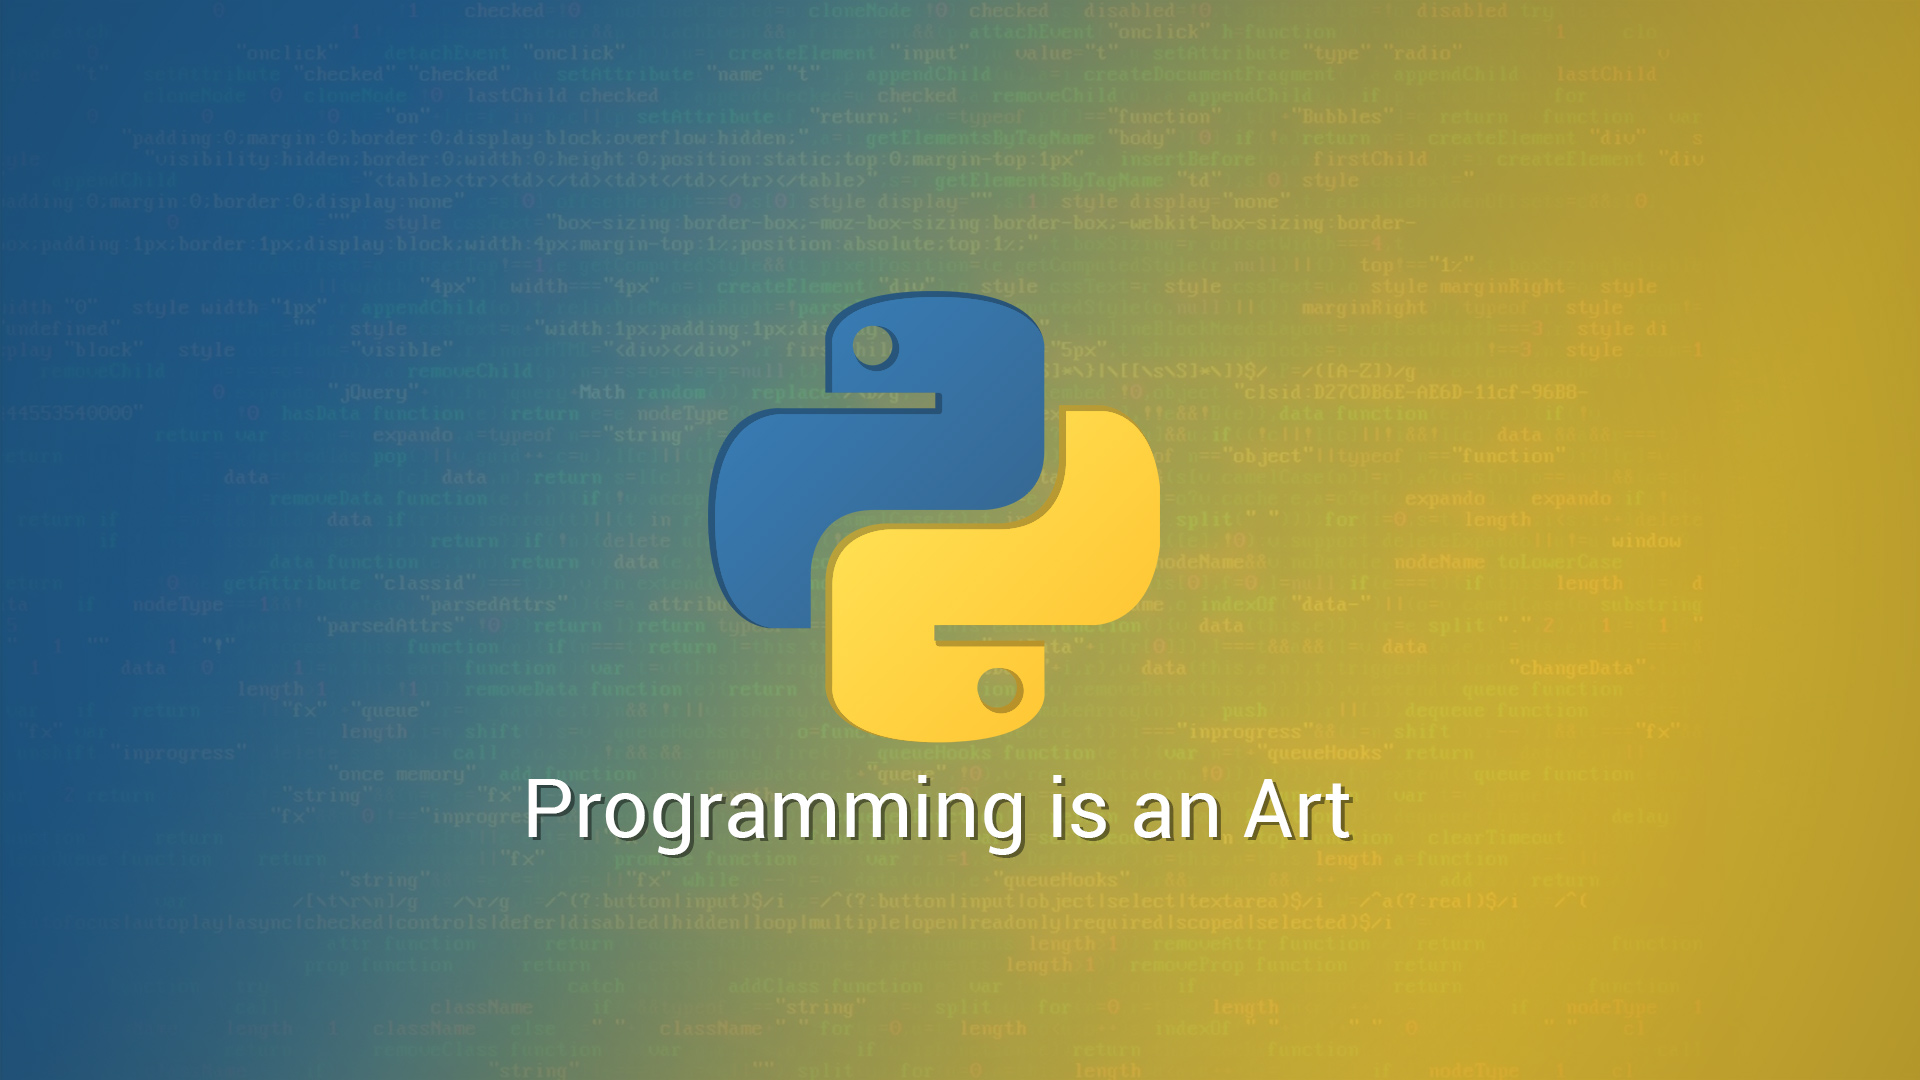 Python HD Computer 4k Wallpapers Images Backgrounds Photos And